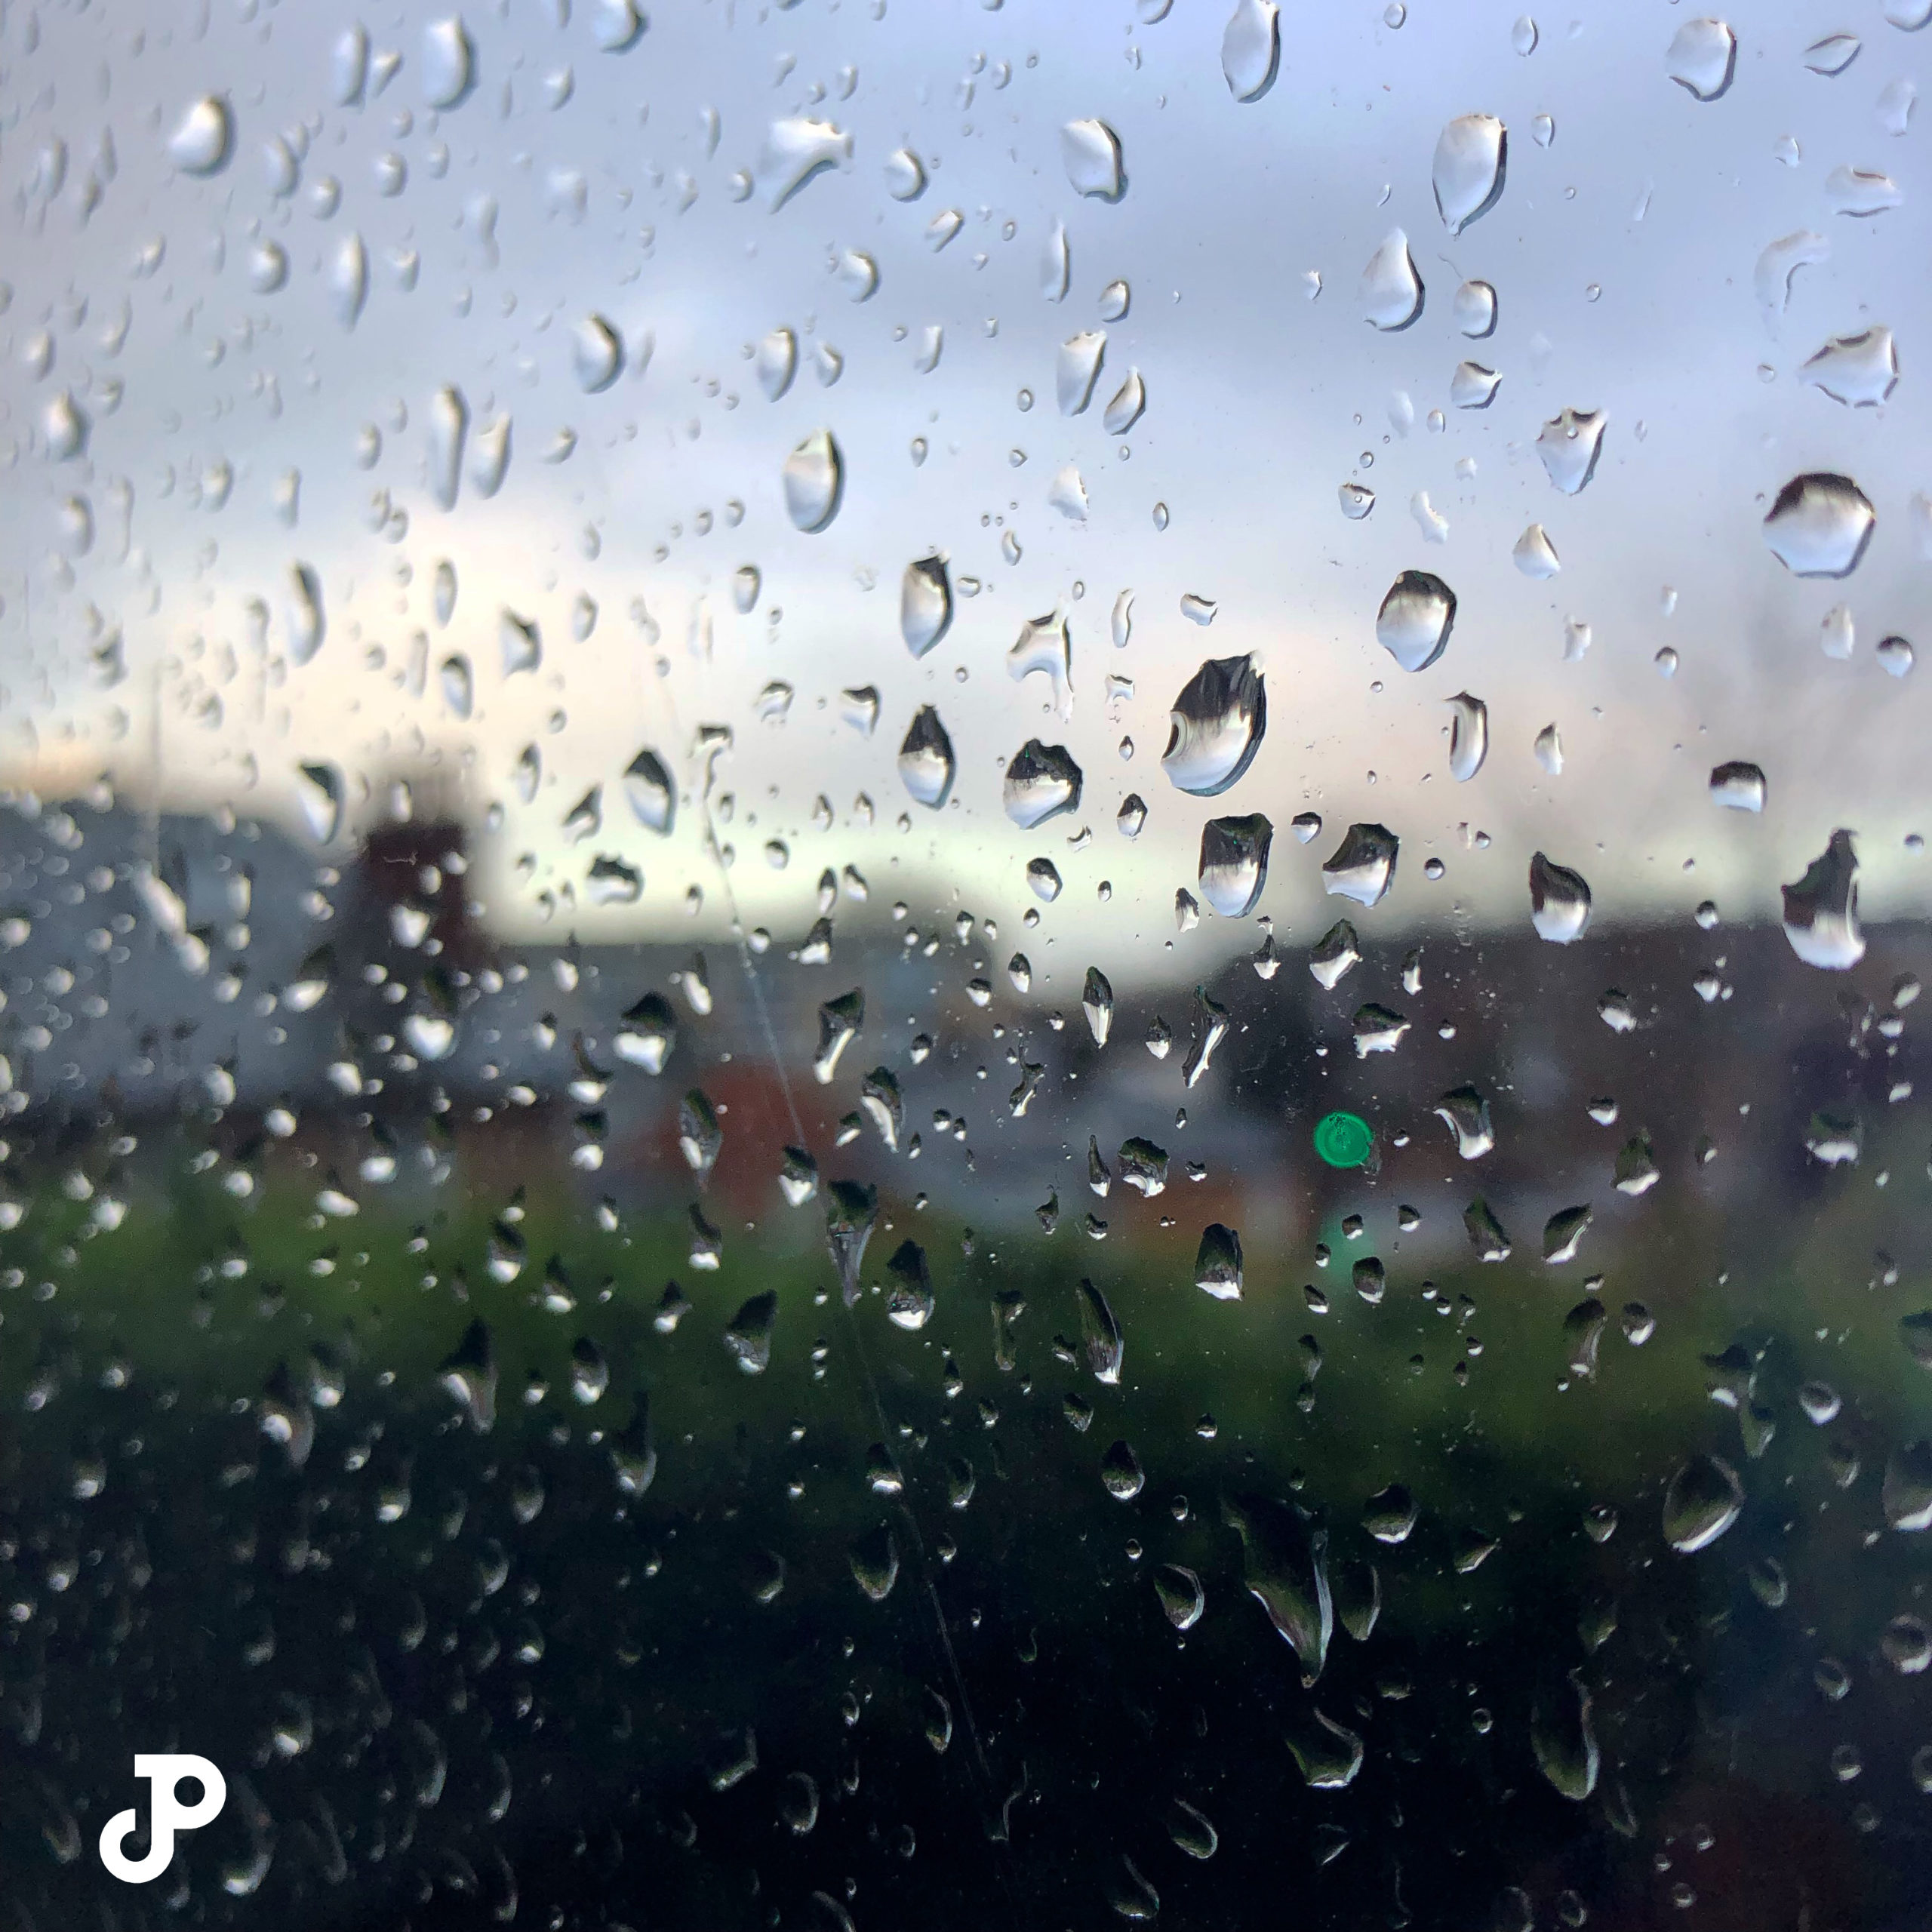 a windowpane splattered with raindrops